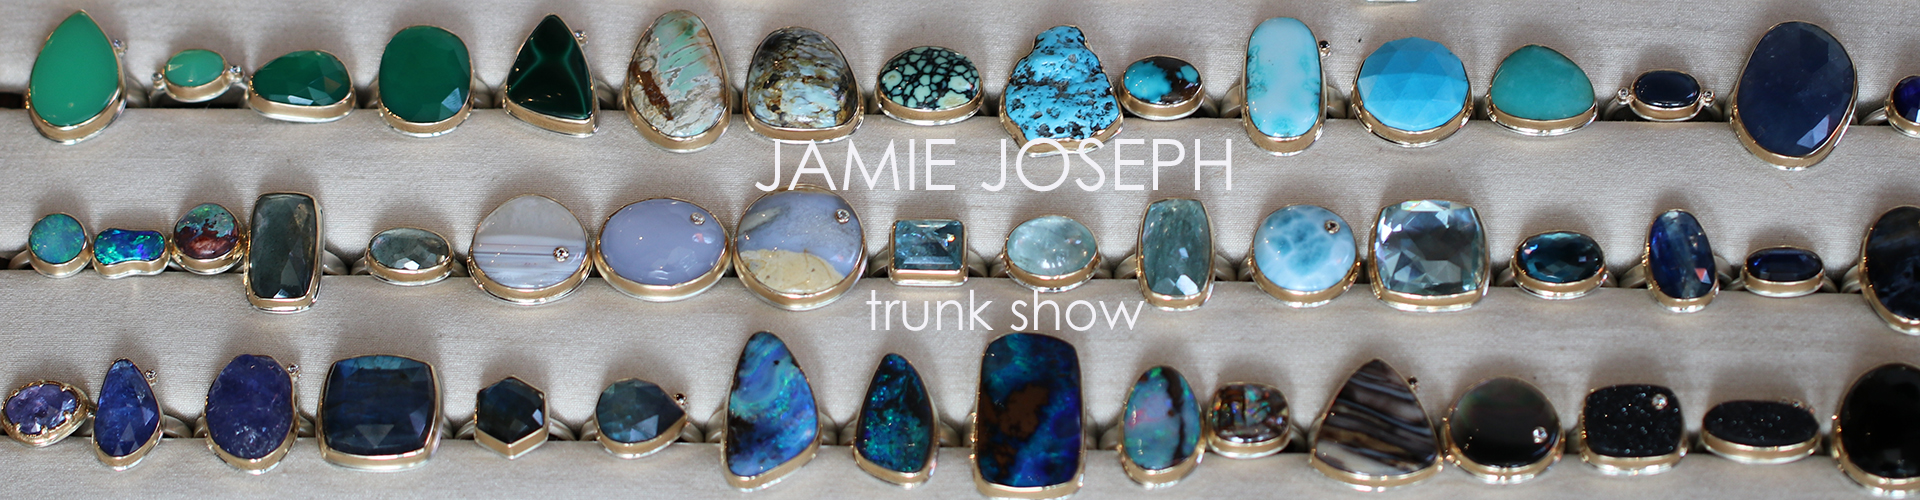 Jamie Joseph Trunk Show at Voiage Los Angeles